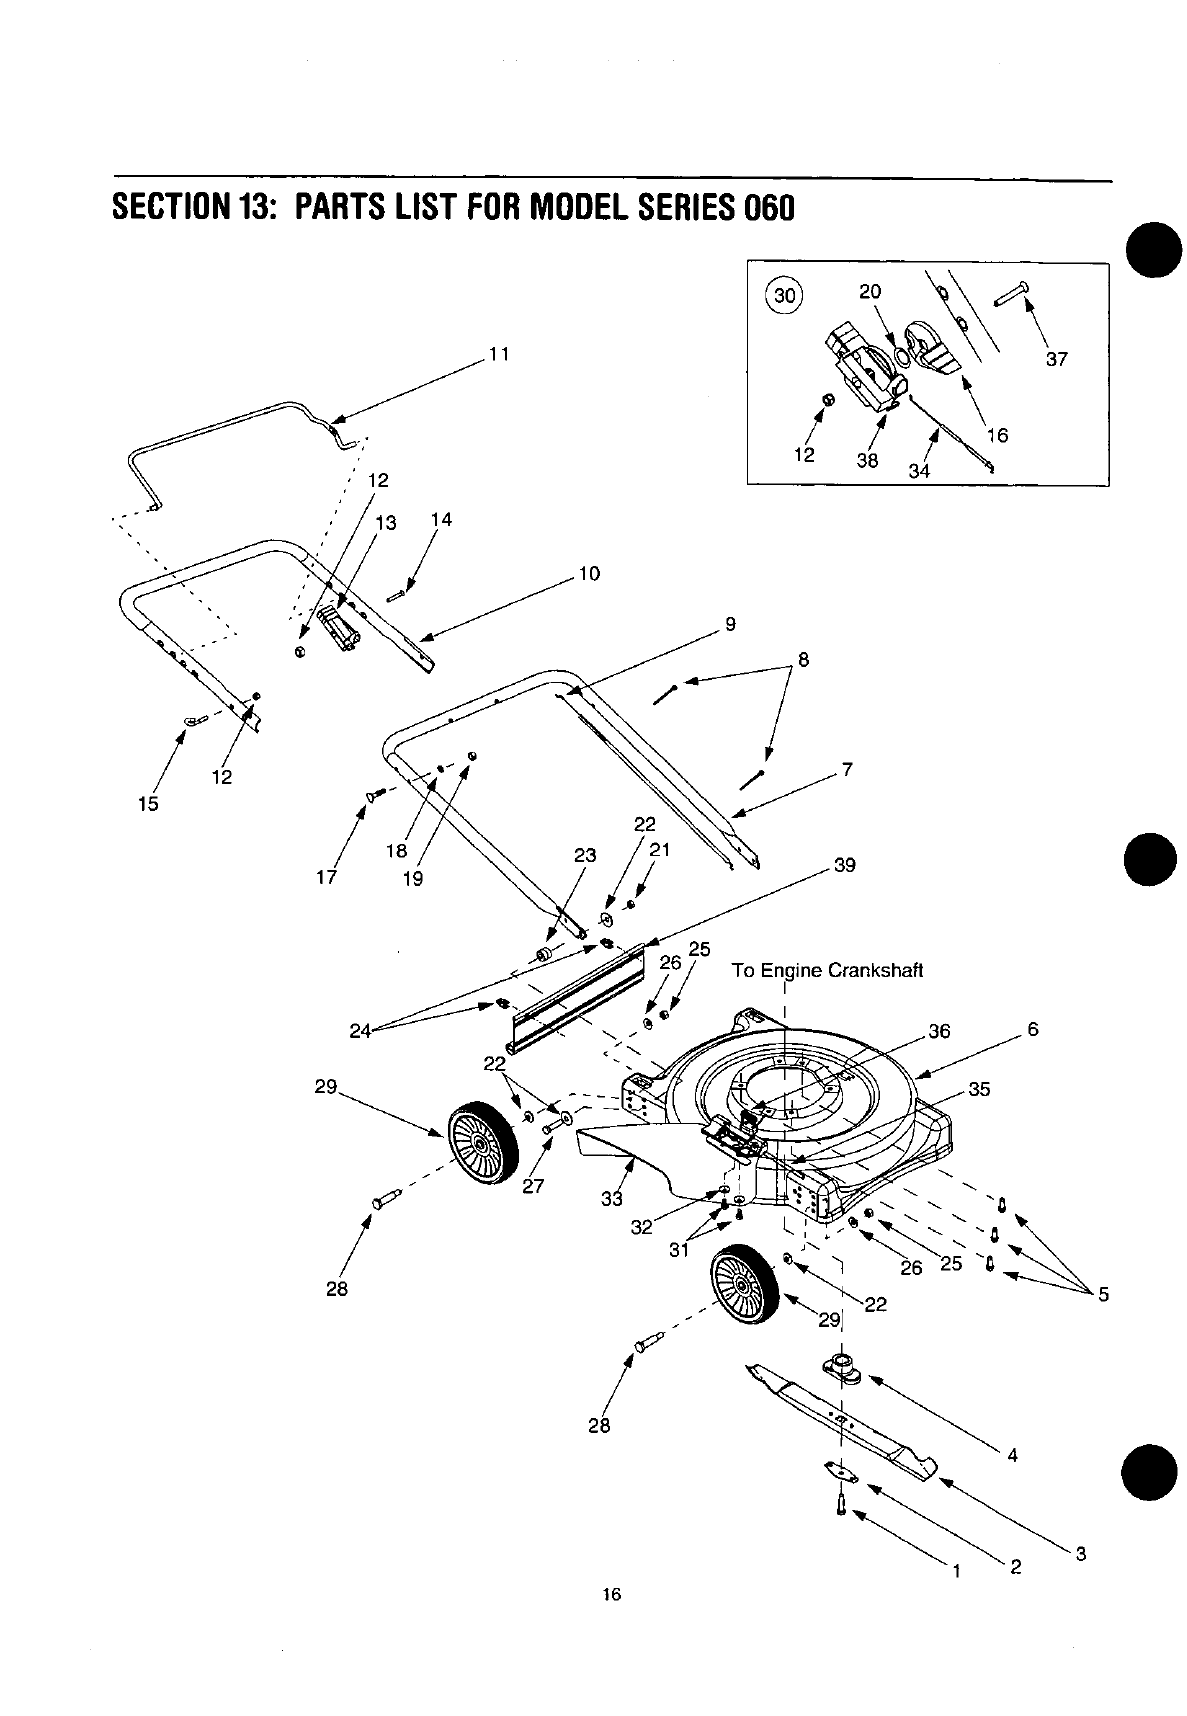 Page 16 of Yard Machines Lawn Mower 060 Series User Guide